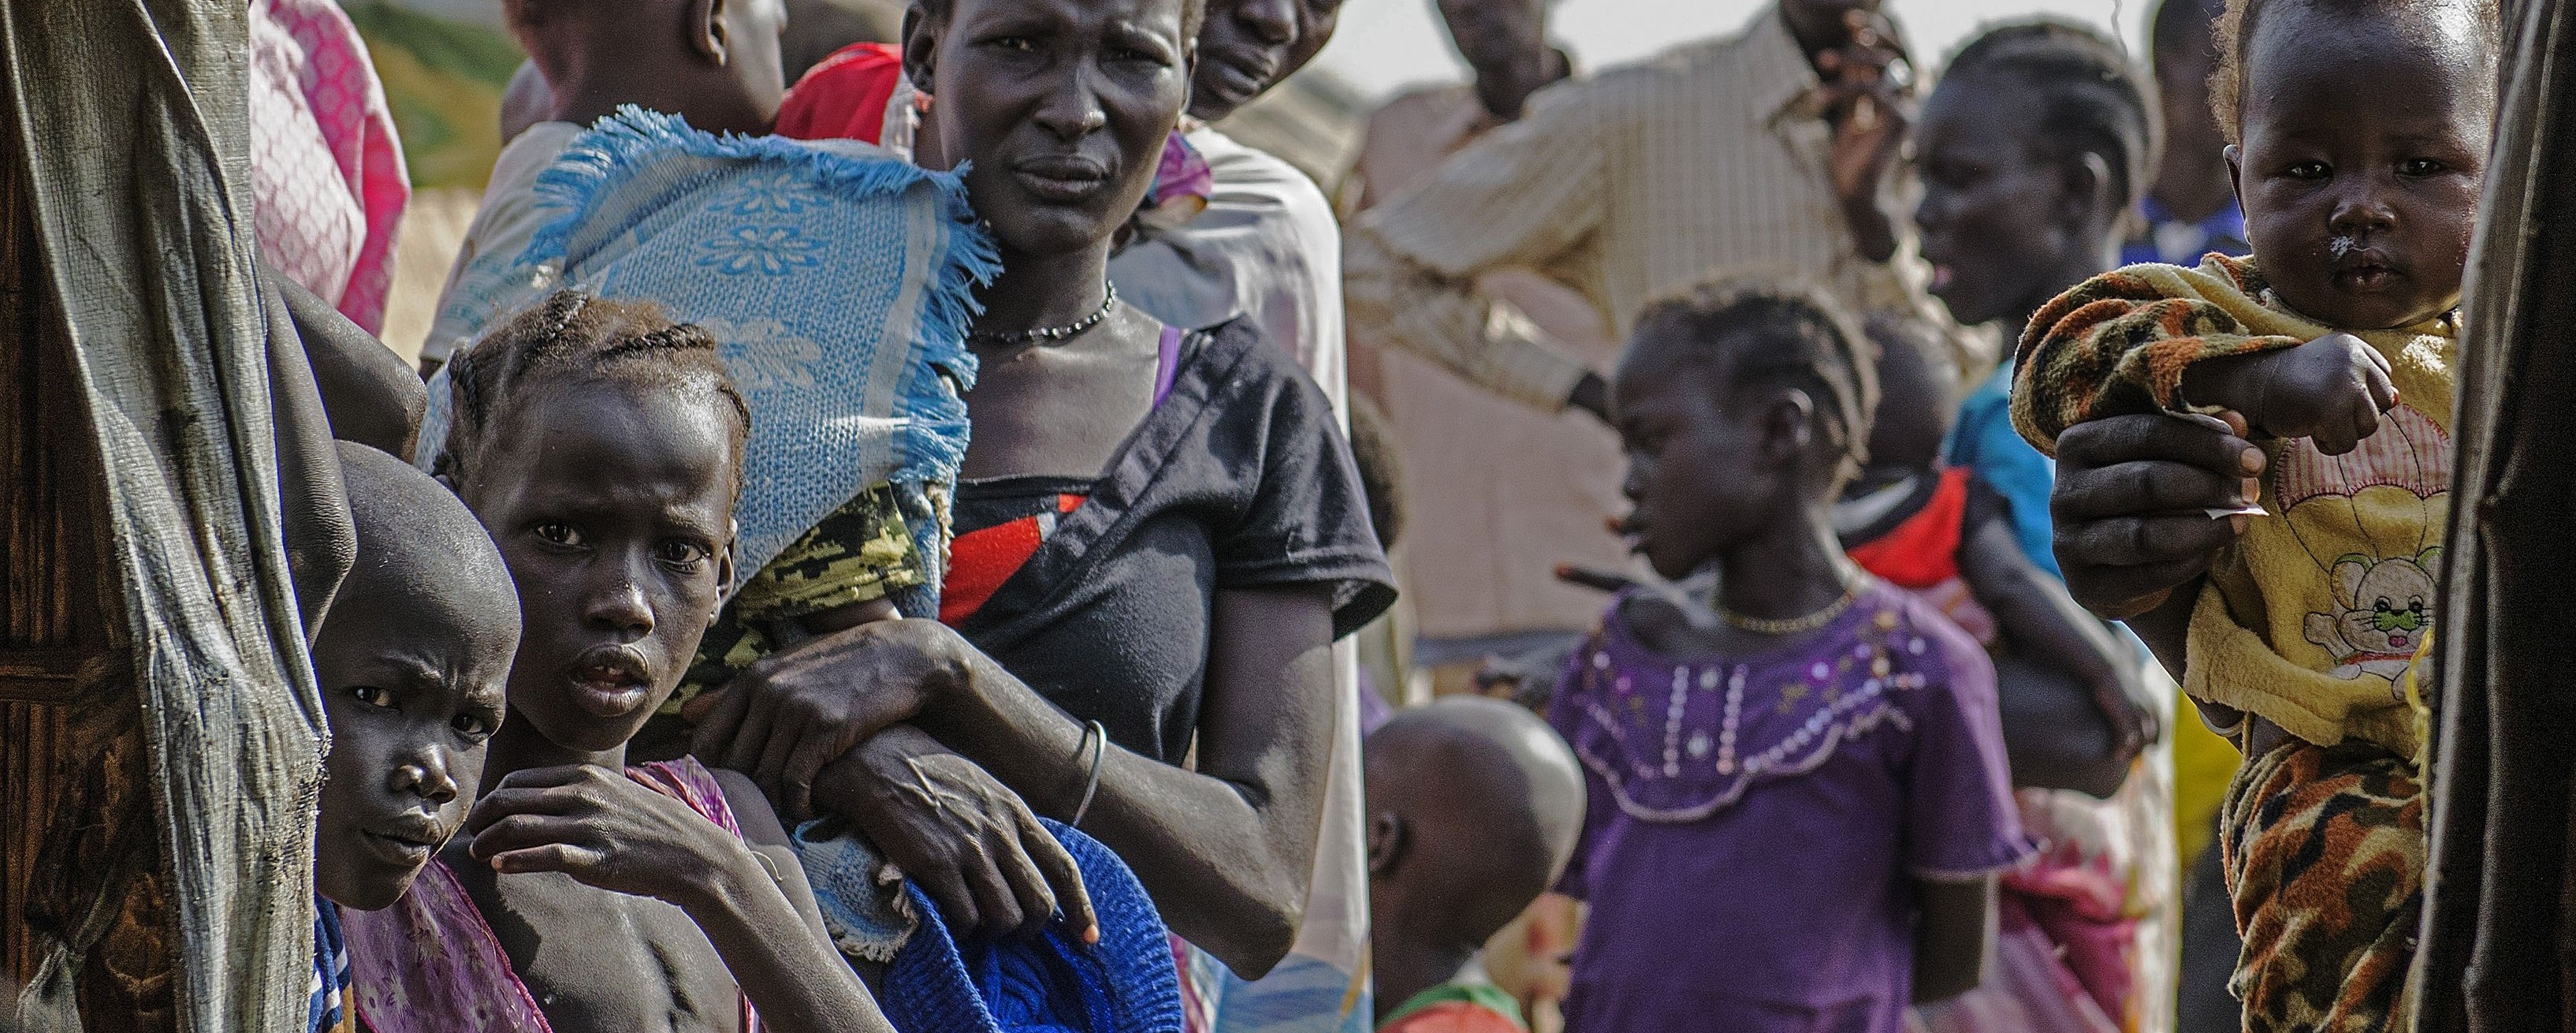 Armed Groups Reportedly Raped, Castrated, and Slit the Throats of Children in South Sudan